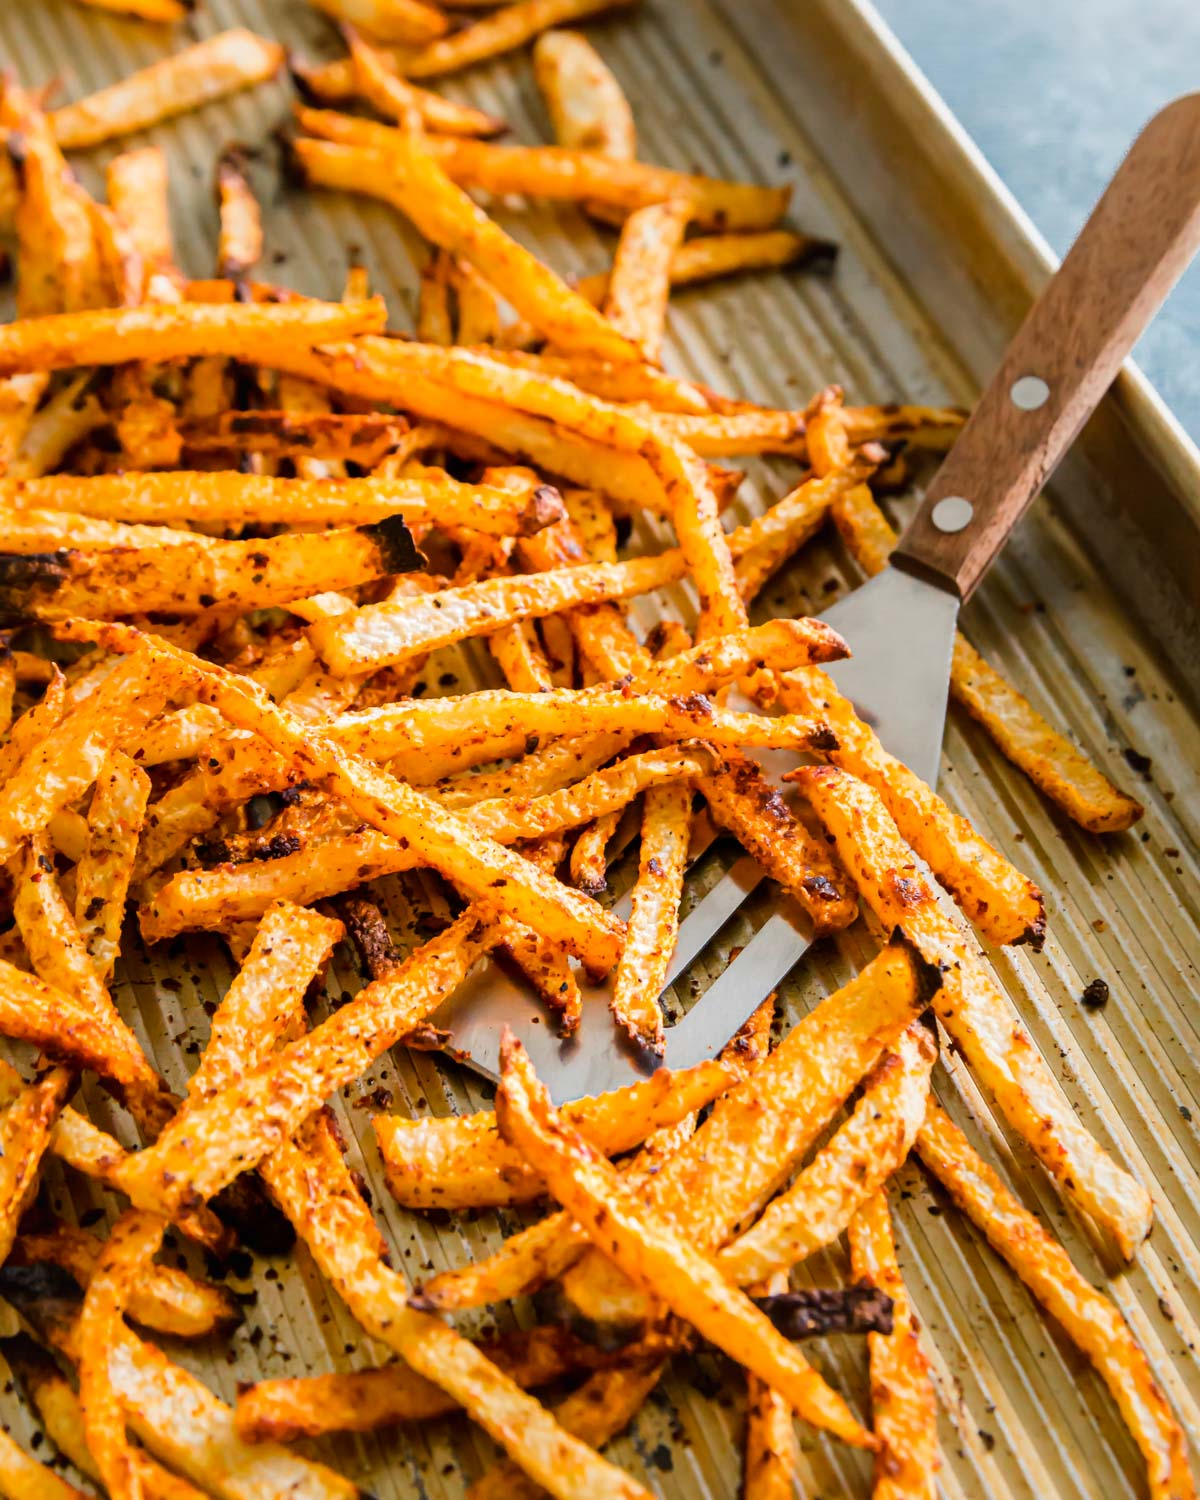 Learn how to make jicama fries with the perfect crispy texture in the oven!